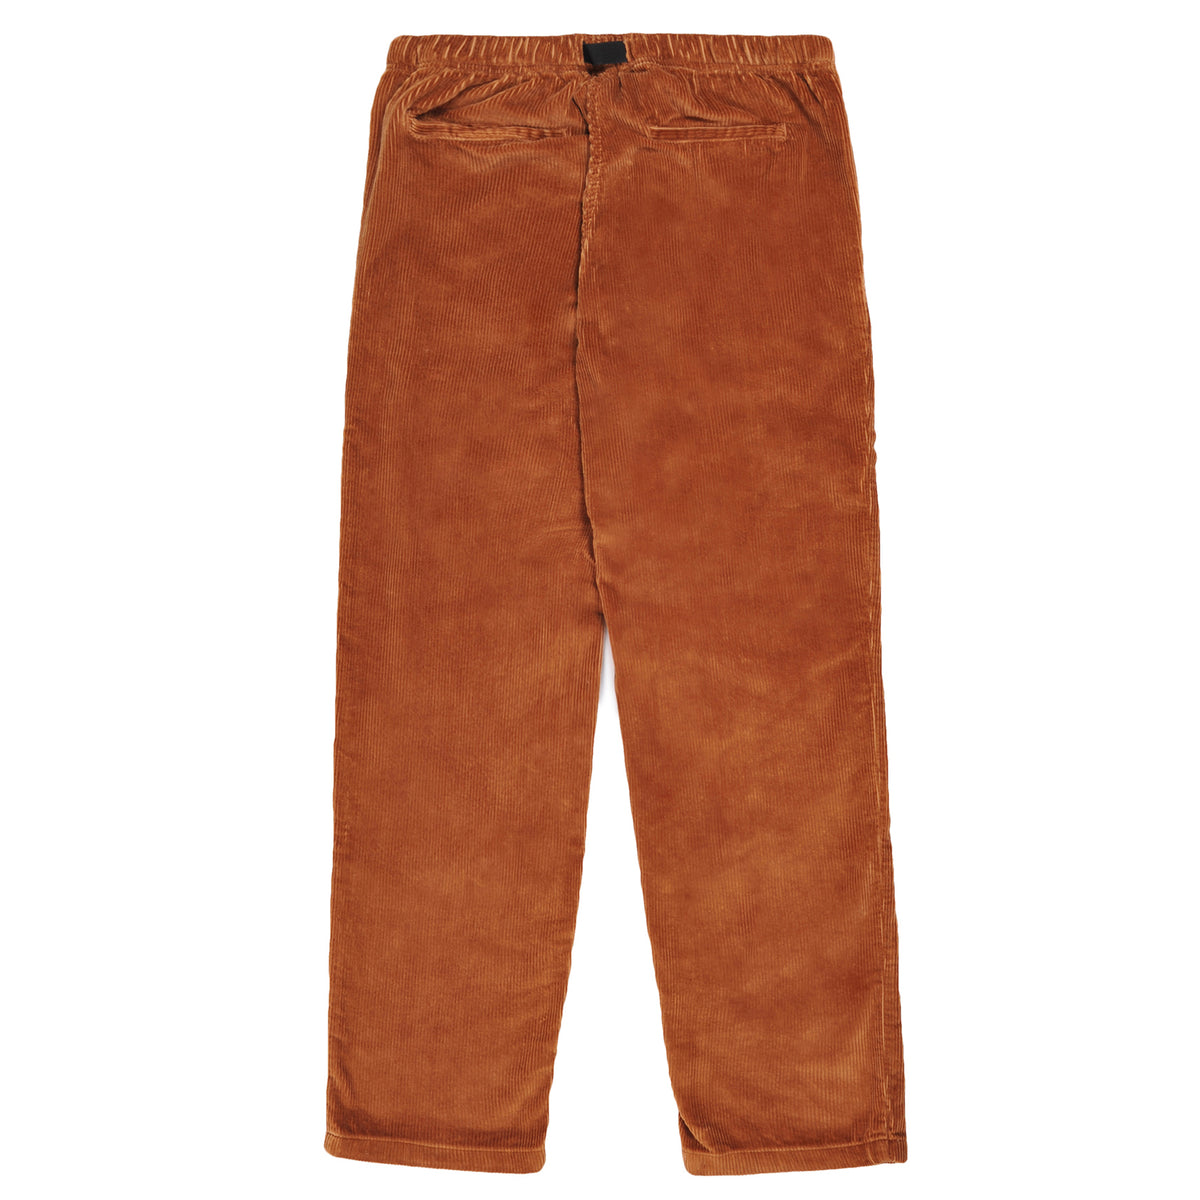 SPIKE cord climbing pant camel - RAVE skateboards